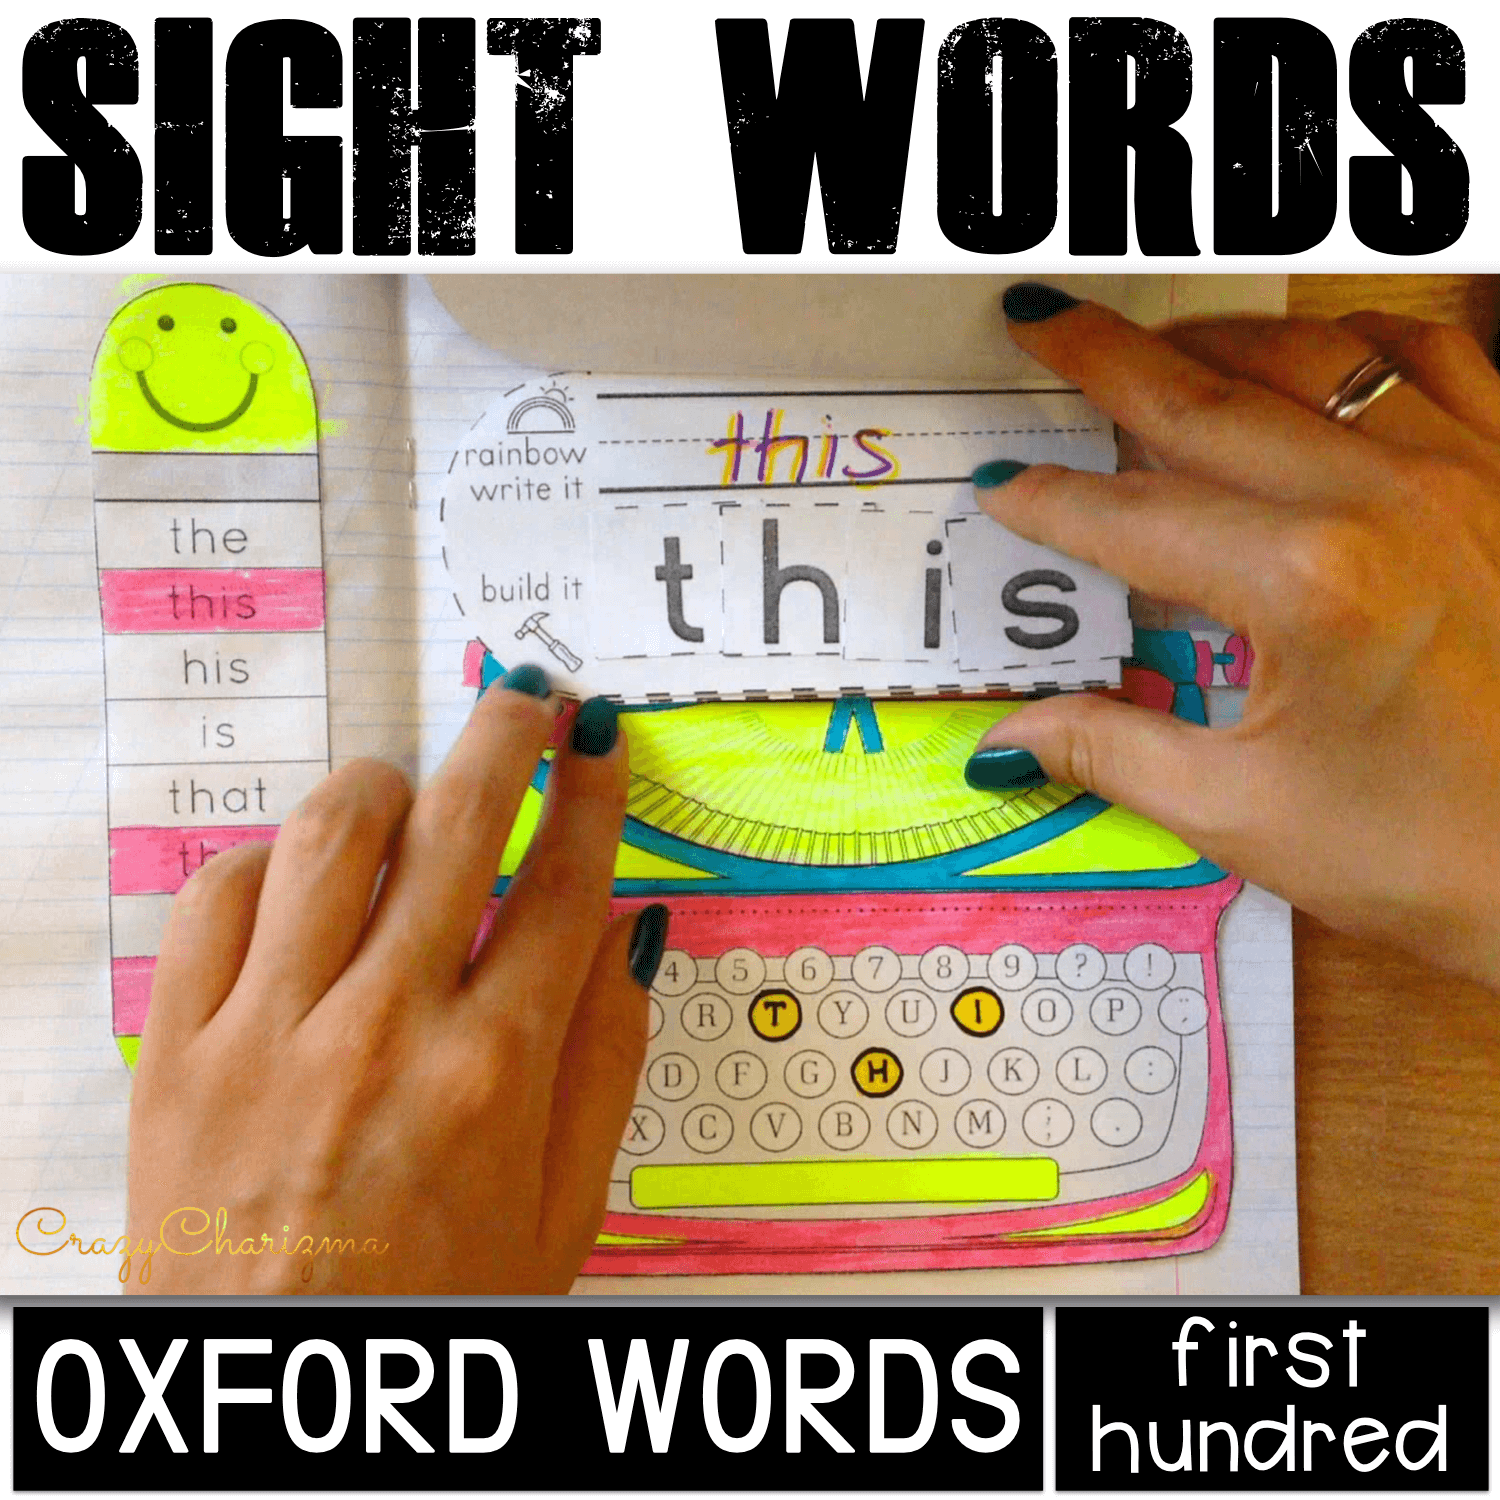 Enjoy hands-on activities and practice high-frequency words from the Oxford words list. Help kids recognize, write, read and learn the top 100 sight words that are key to reading success. Australian Curriculum